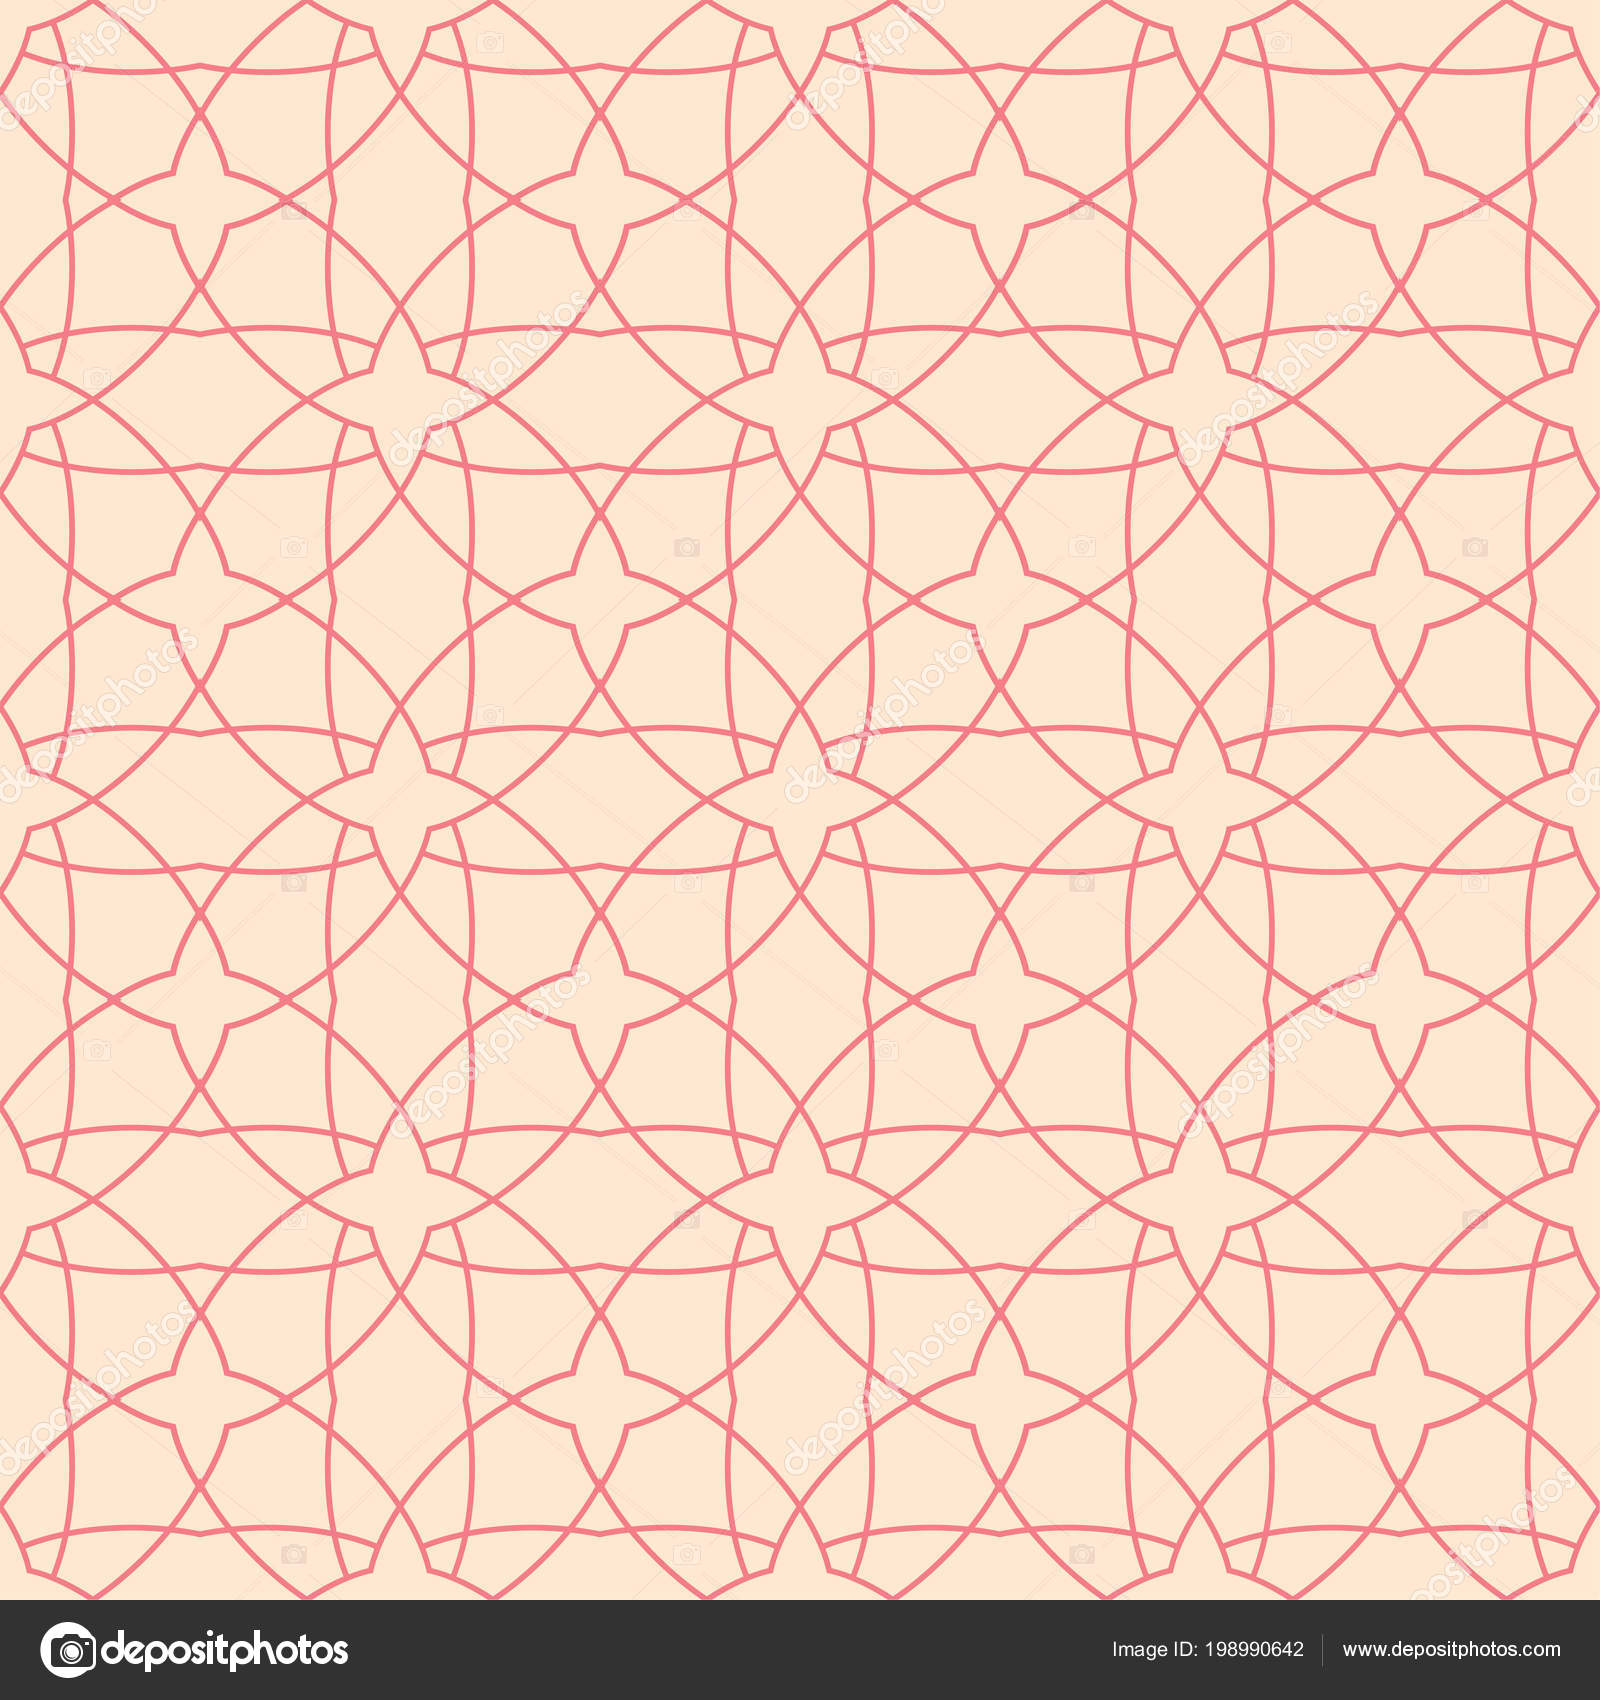 Red And Beige Geometric Ornament Seamless Pattern For Web, Textile